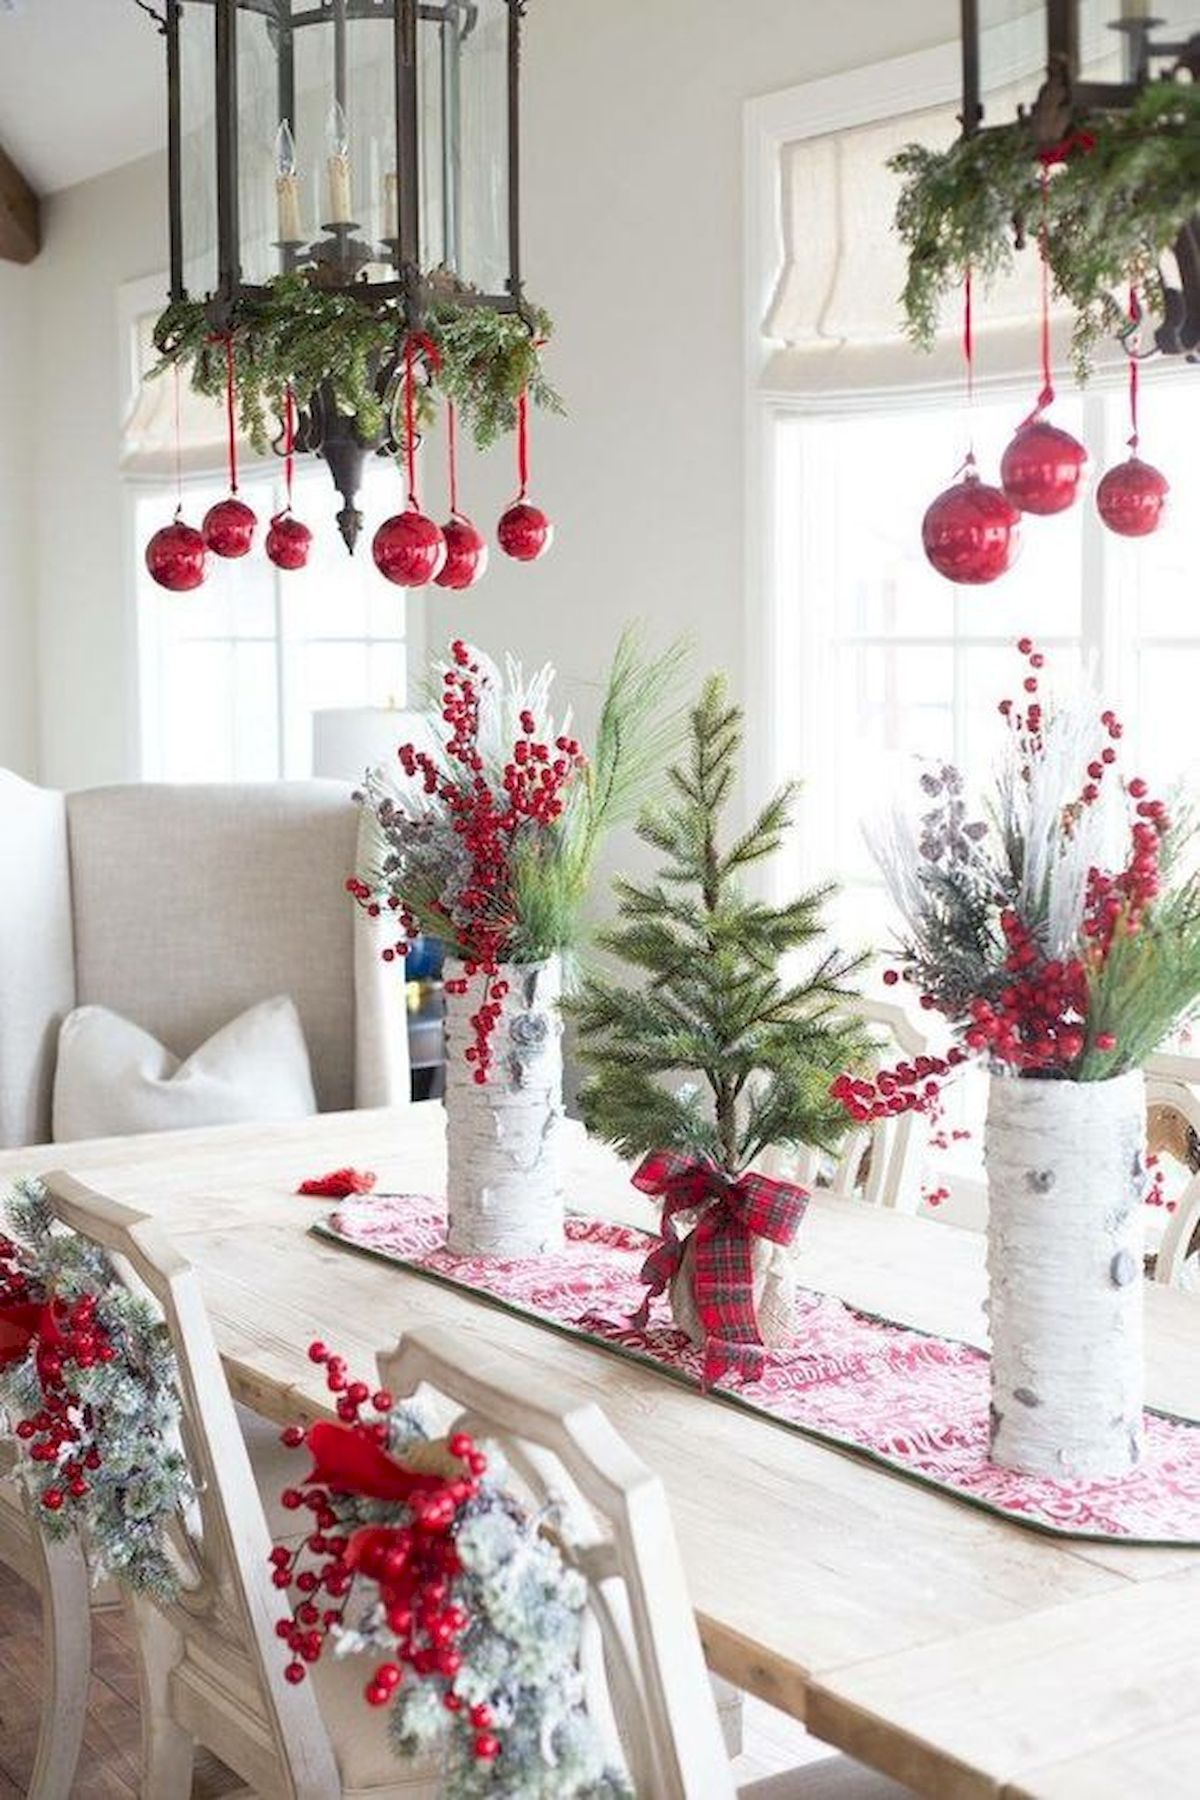 nice 60 elegant christmas decorations ideas httpsroomadnesscom2018060660 elegant christmas decorations ideas - Elegant Christmas Decorating Ideas